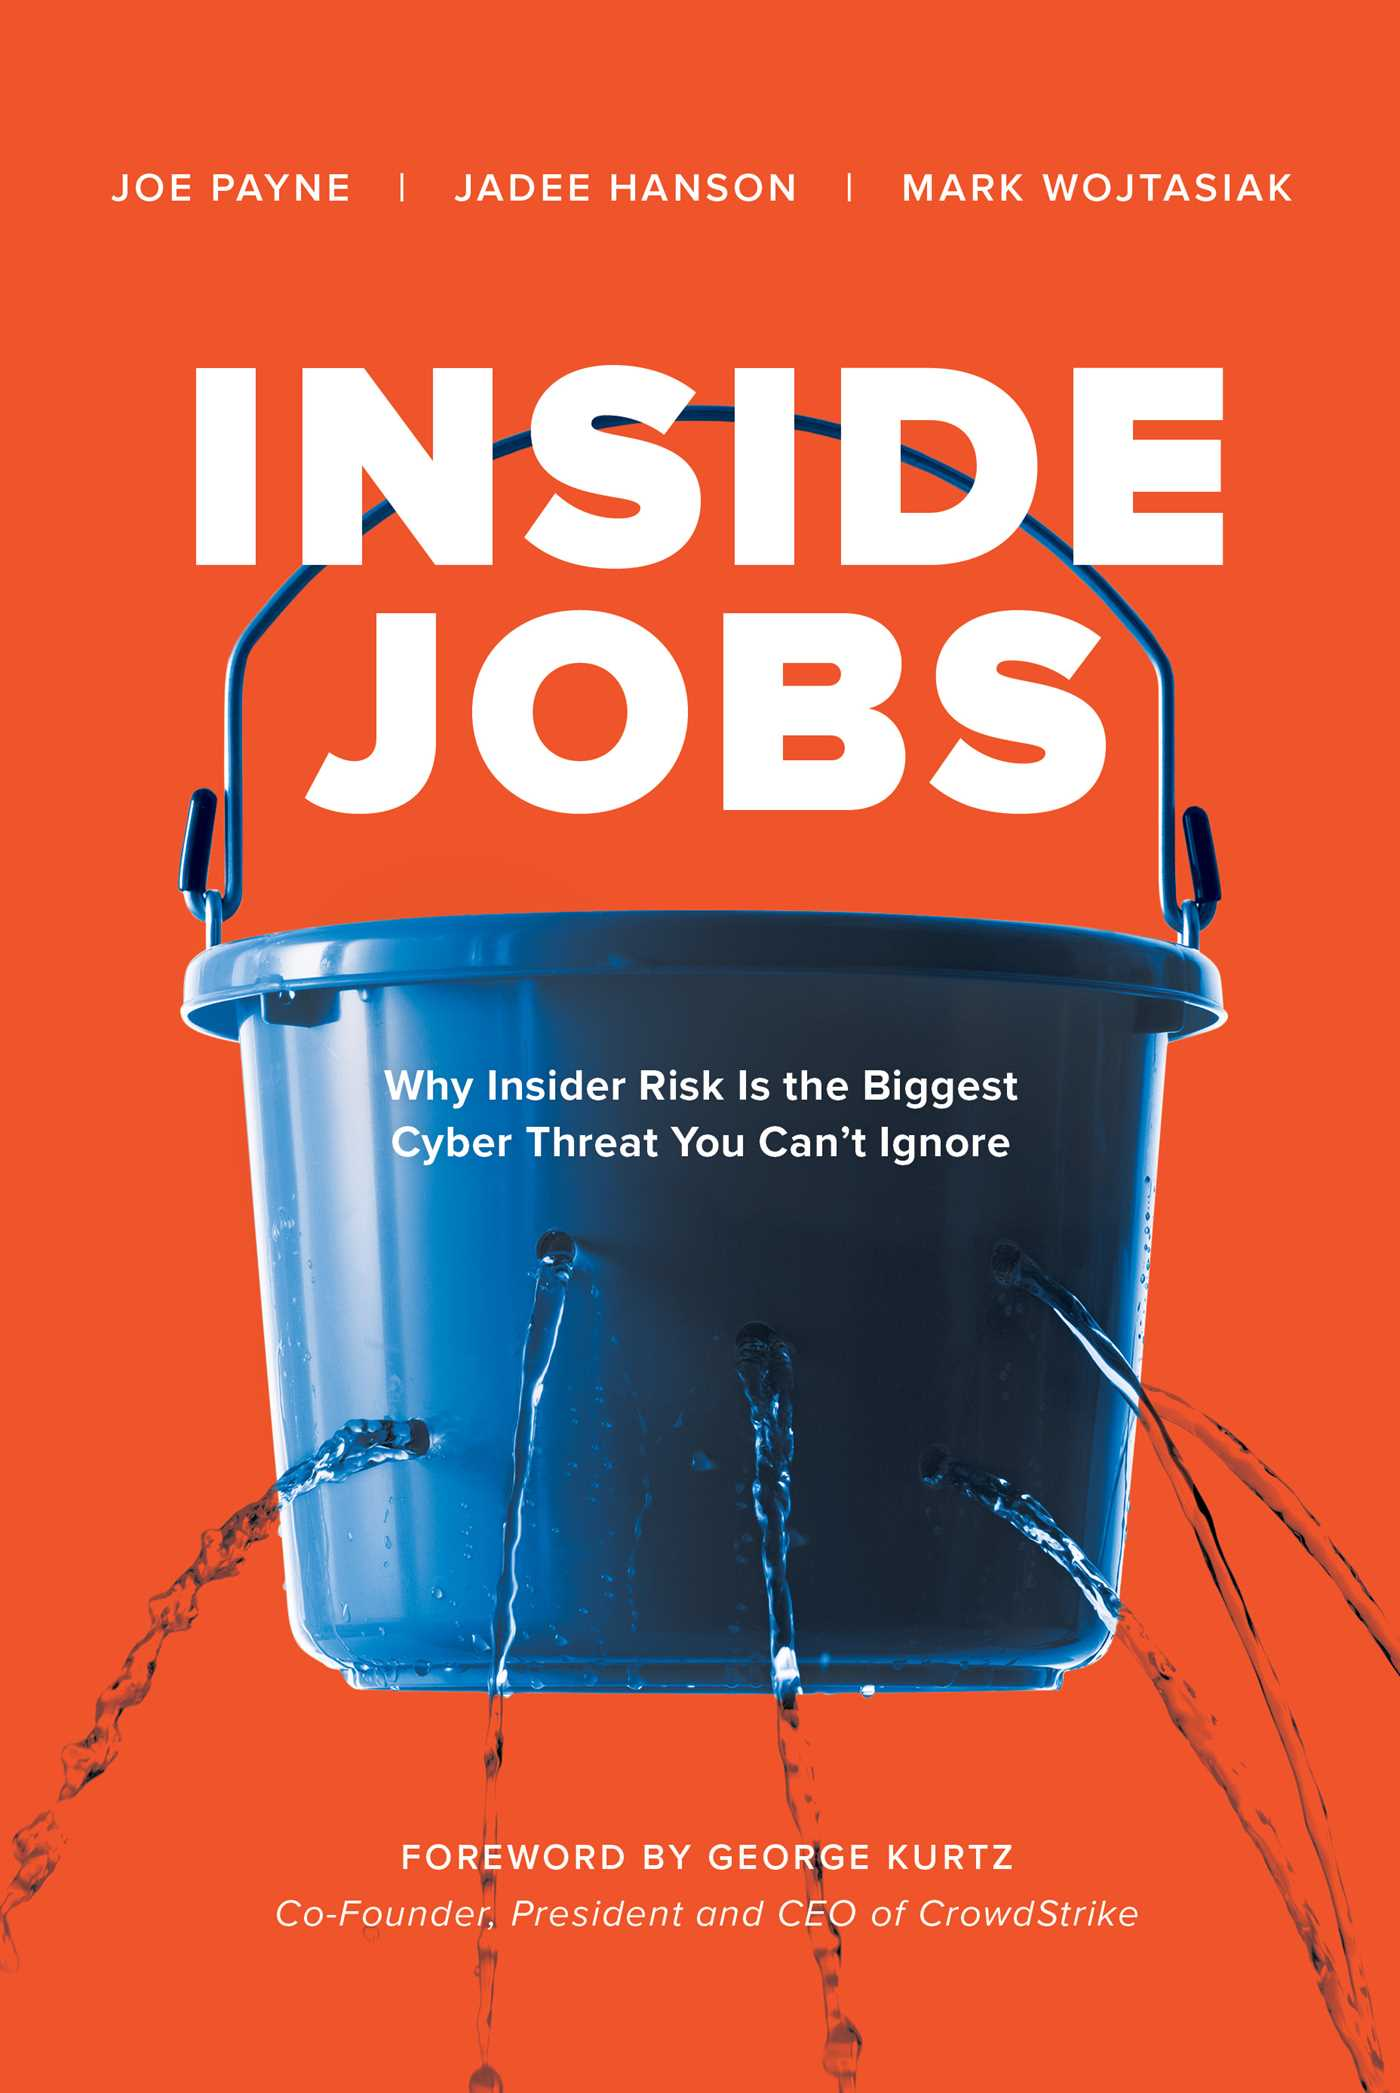 Inside Jobs: Why Insider Risk Is the Biggest Cyber Threat You Can't Ignore